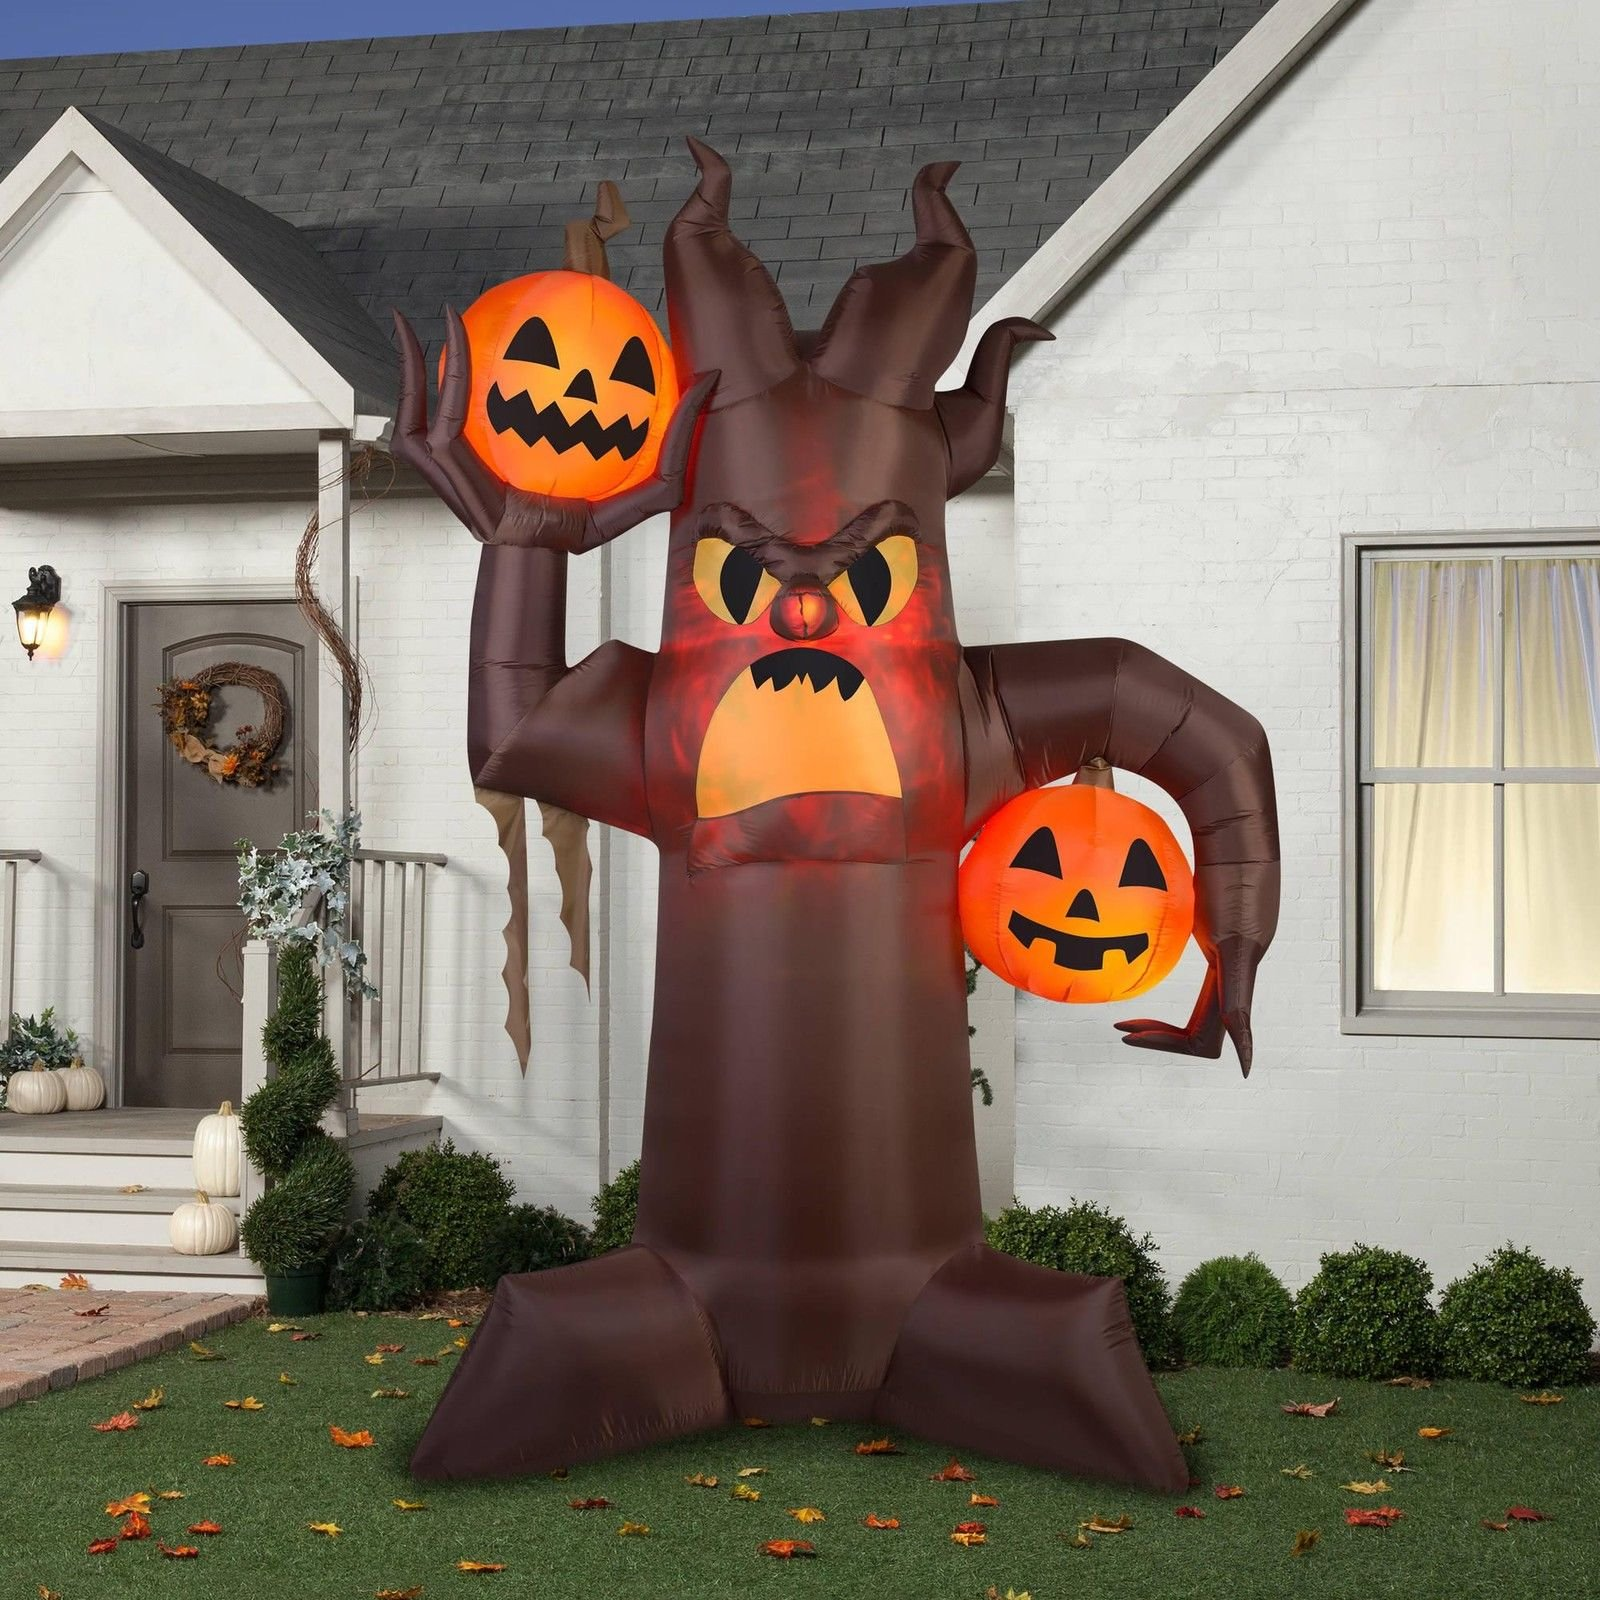 XL Gemmy Airblown Inflatable 10.5' X 7' Brown Scary Tree Halloween Outdoor/Indoor Decoration Fire and Ice by Gemmy (Image #2)